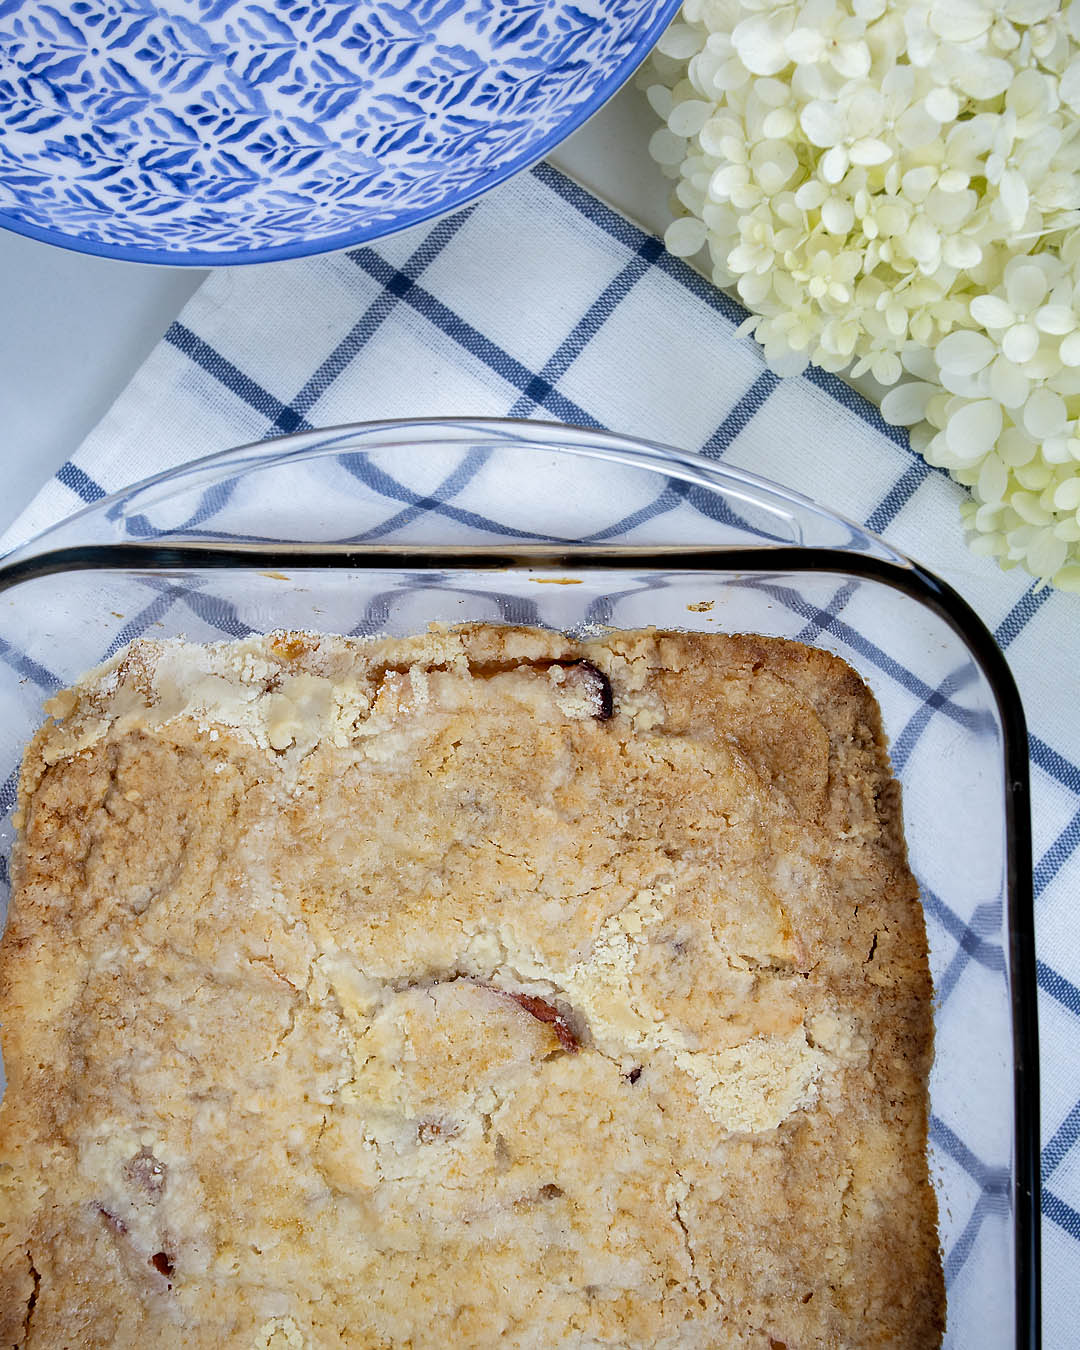 Try this super simple three ingredient peach cobbler to take advantage of all those fresh peaches you've been picking at the orchard this summer!